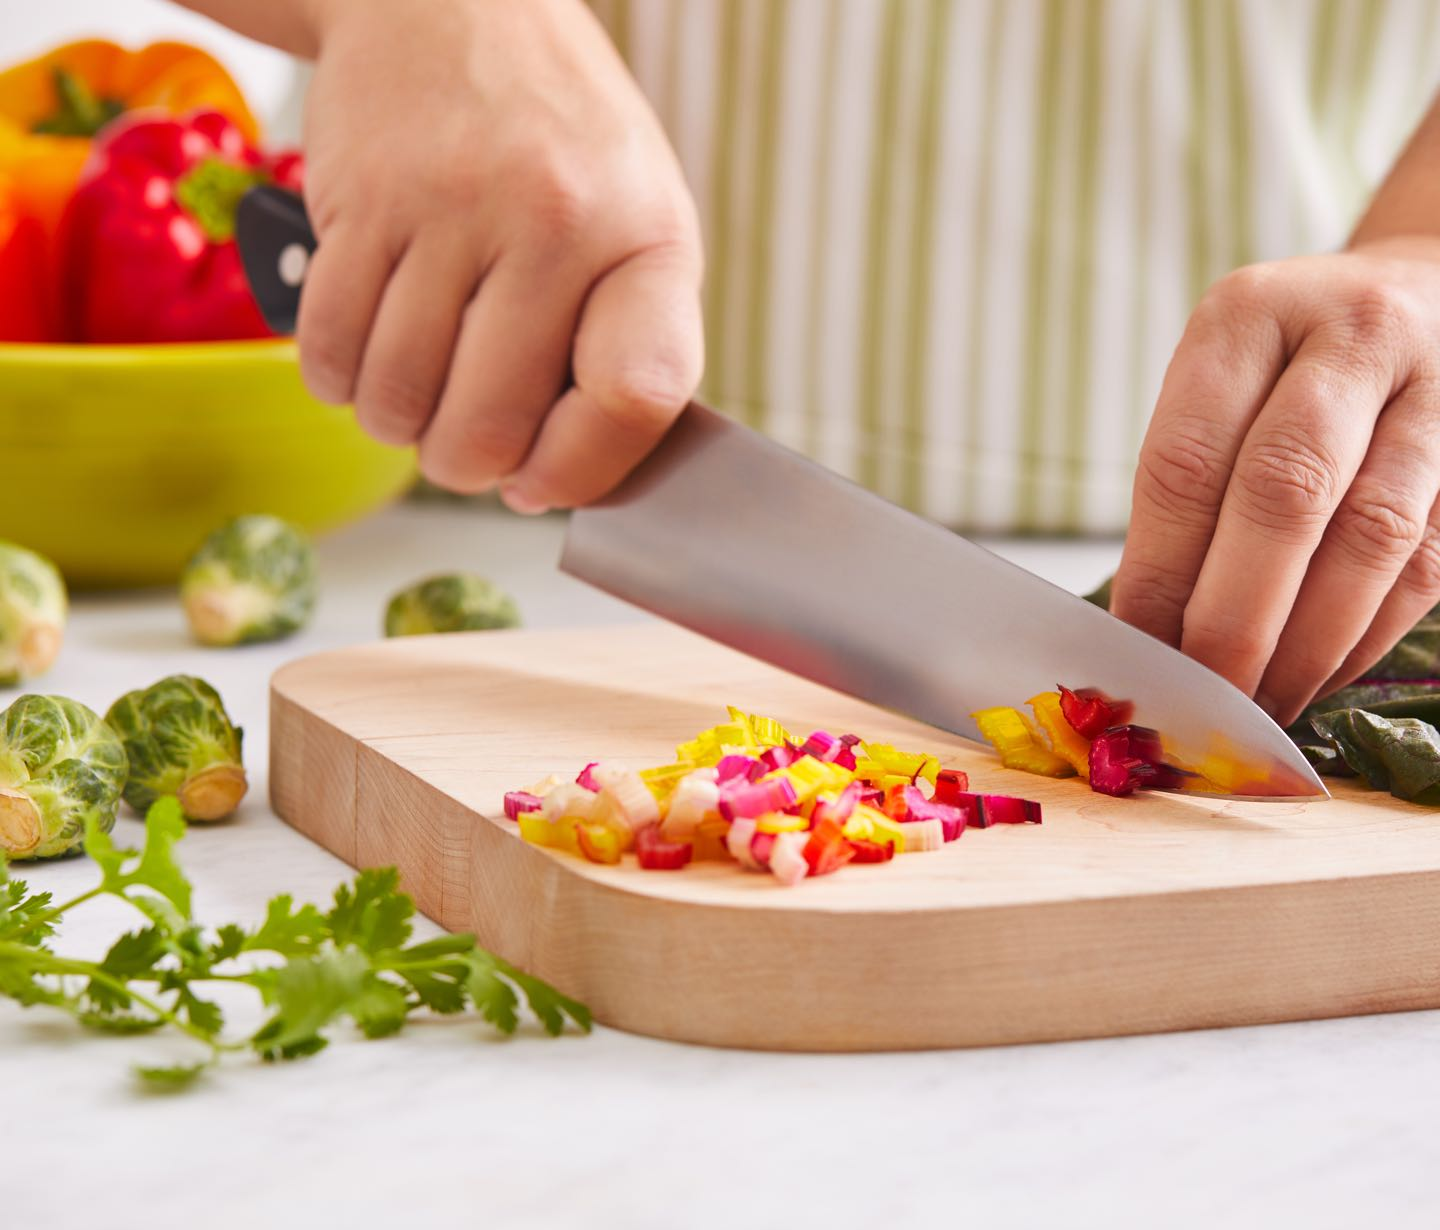 Tap into your inner chef